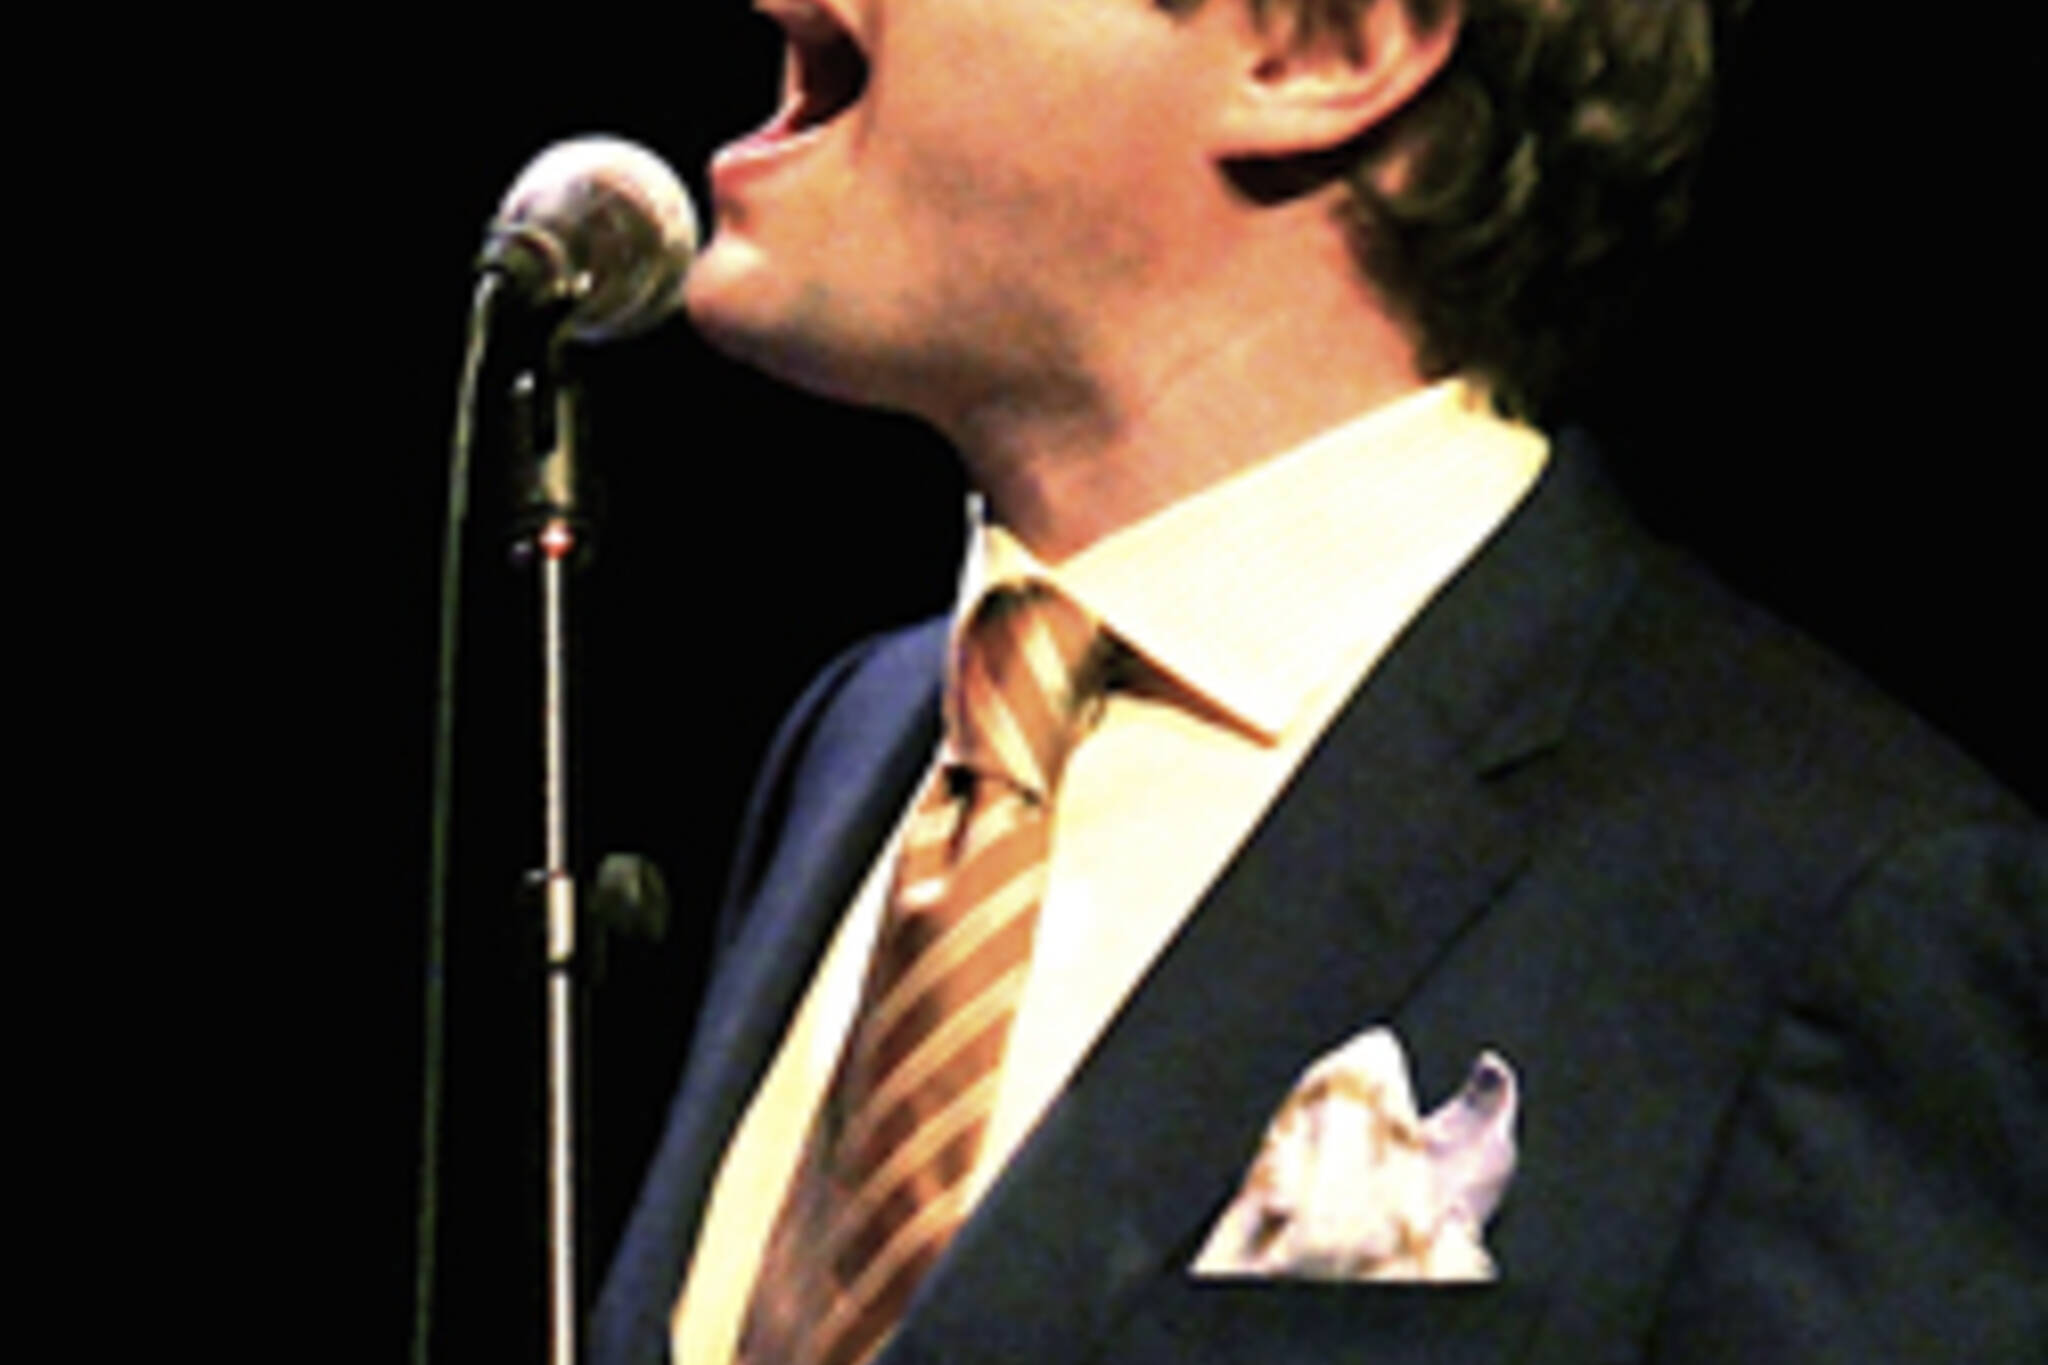 Steven Page of The Barenaked Ladies sings with The Art of Time Ensemble in Toronto